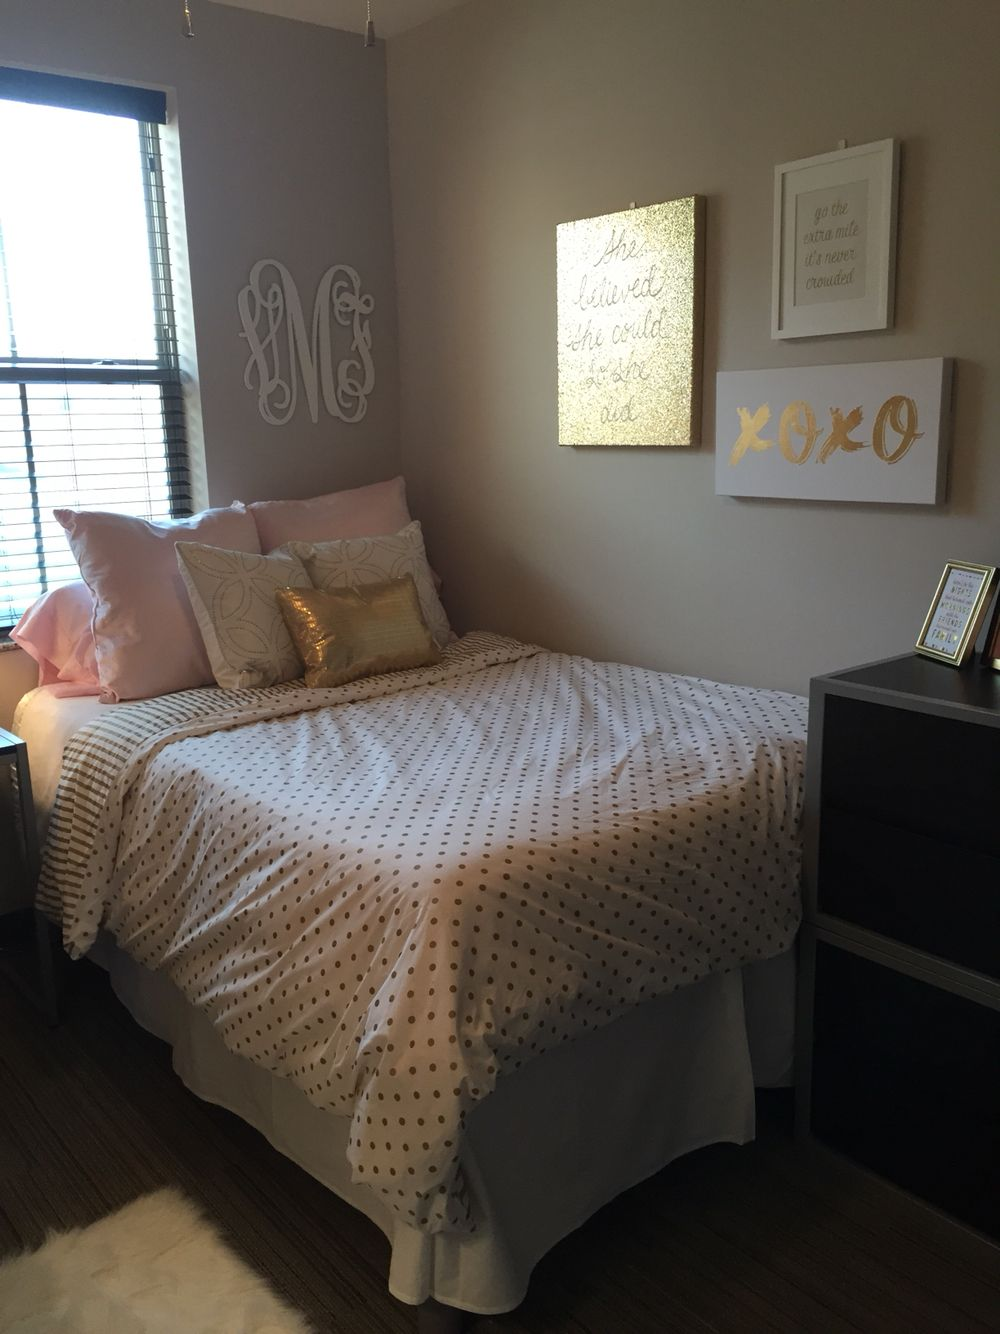 Attractive University Of Kentucky Dorm Room With PBteen Sheets! Part 18